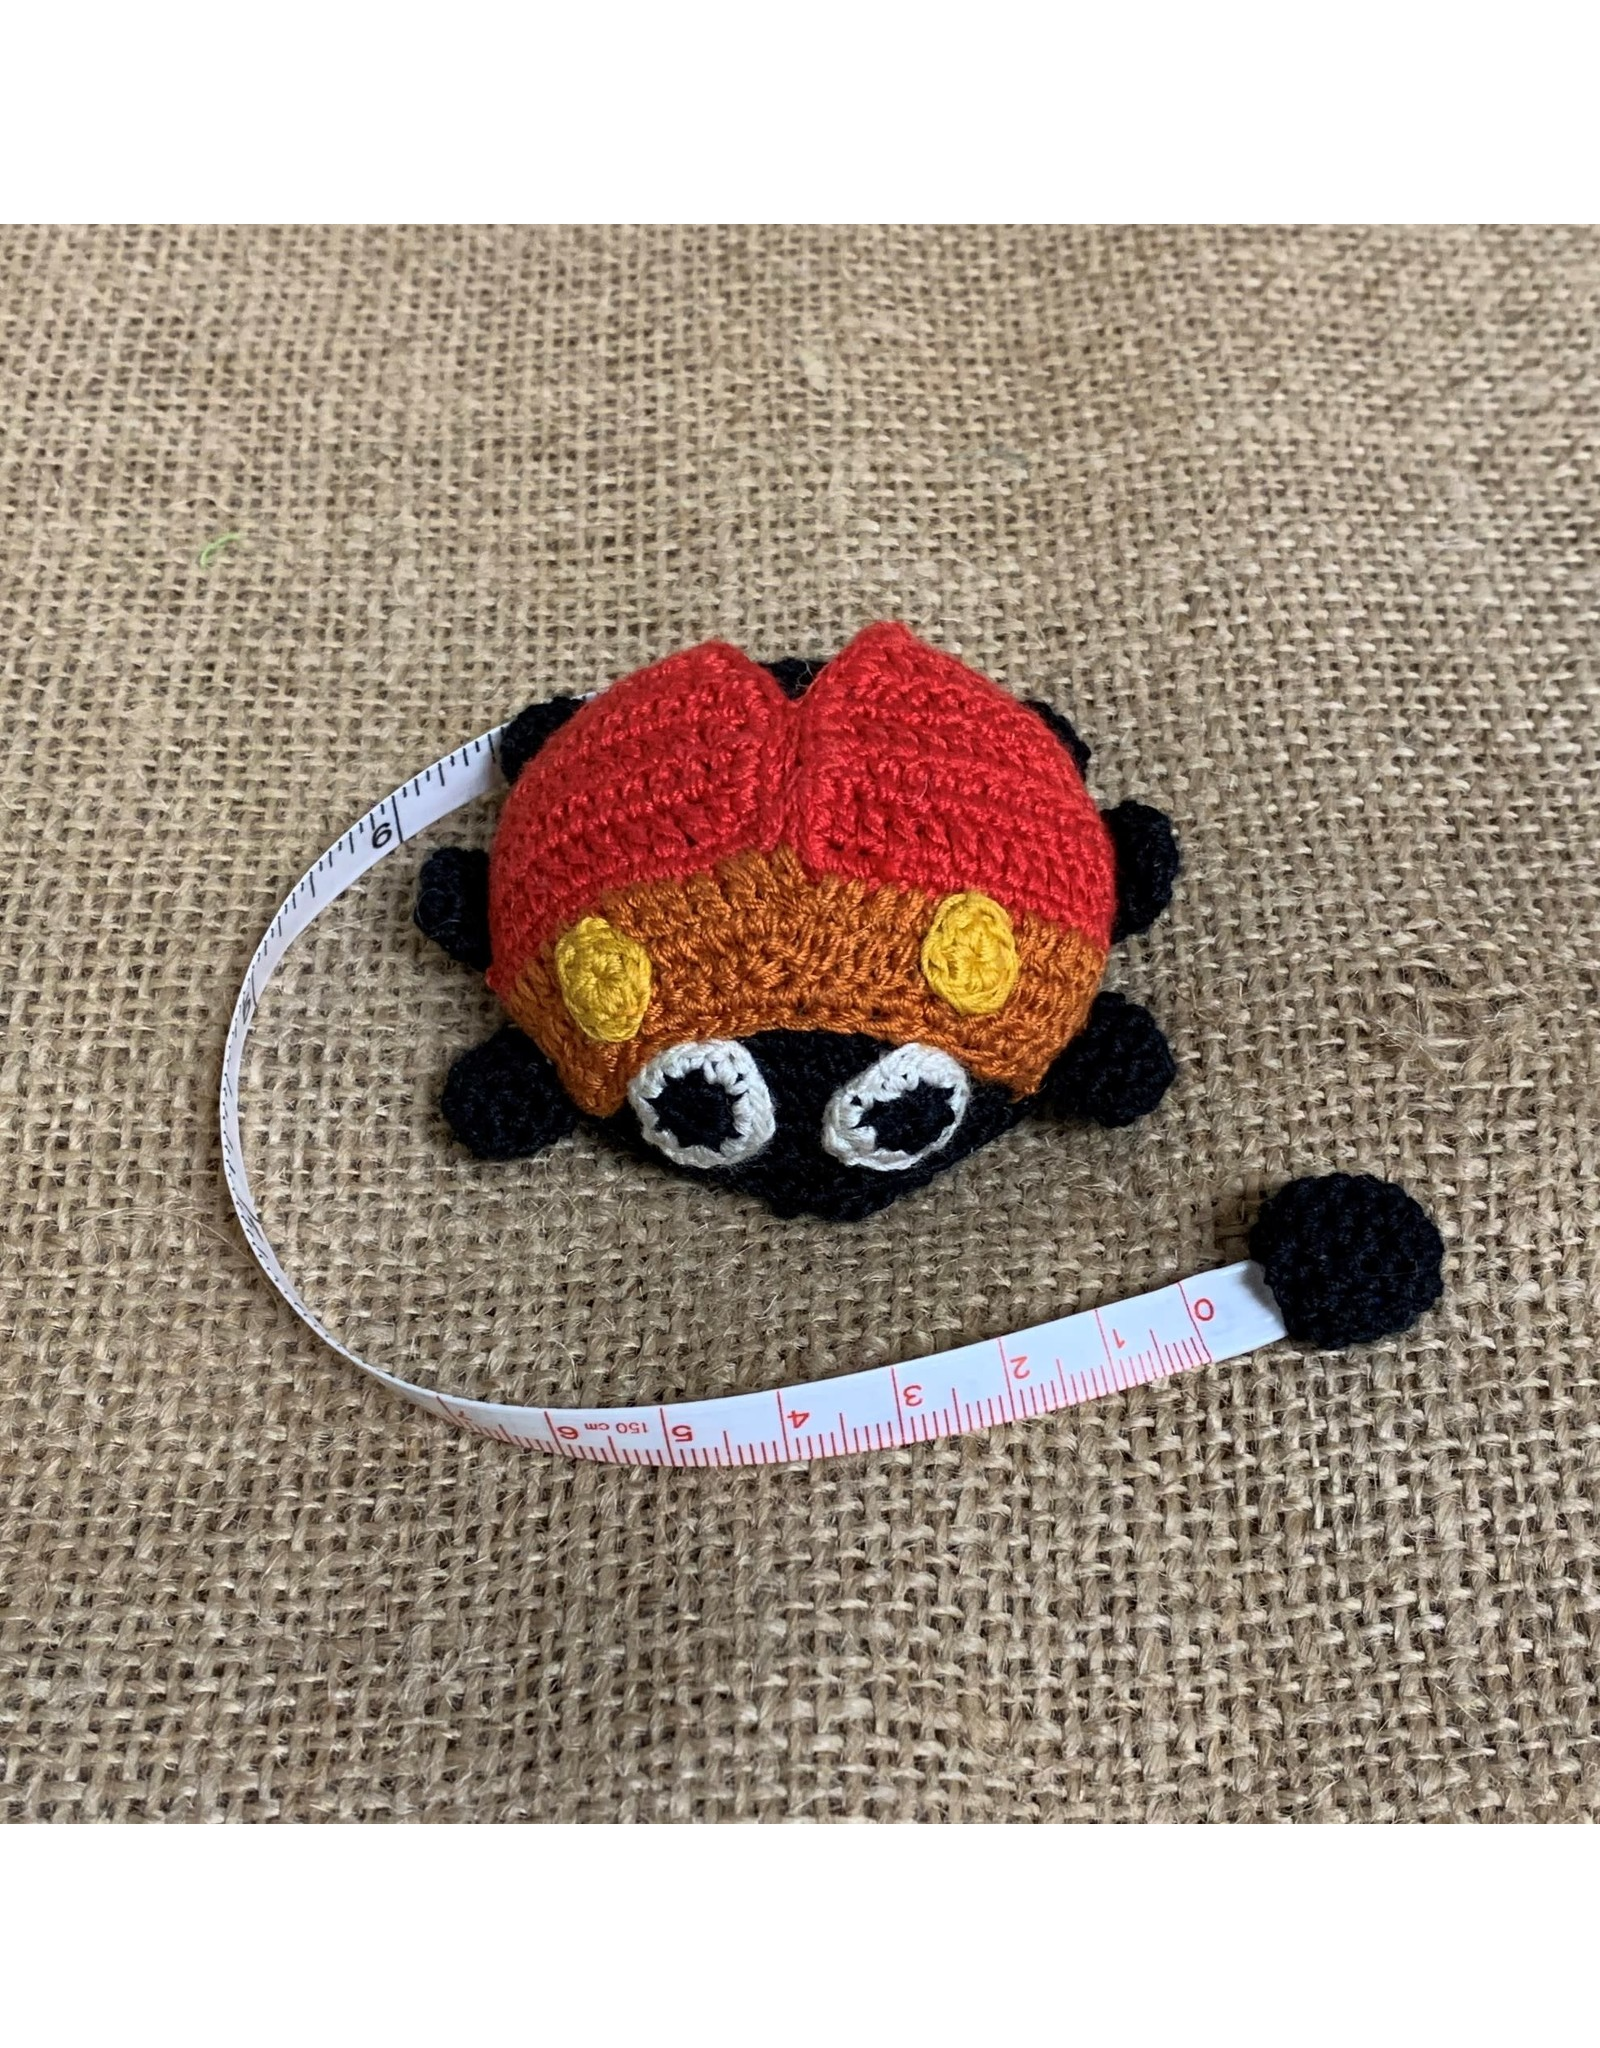 Ten Thousand Villages Ladybug Measuring Tape